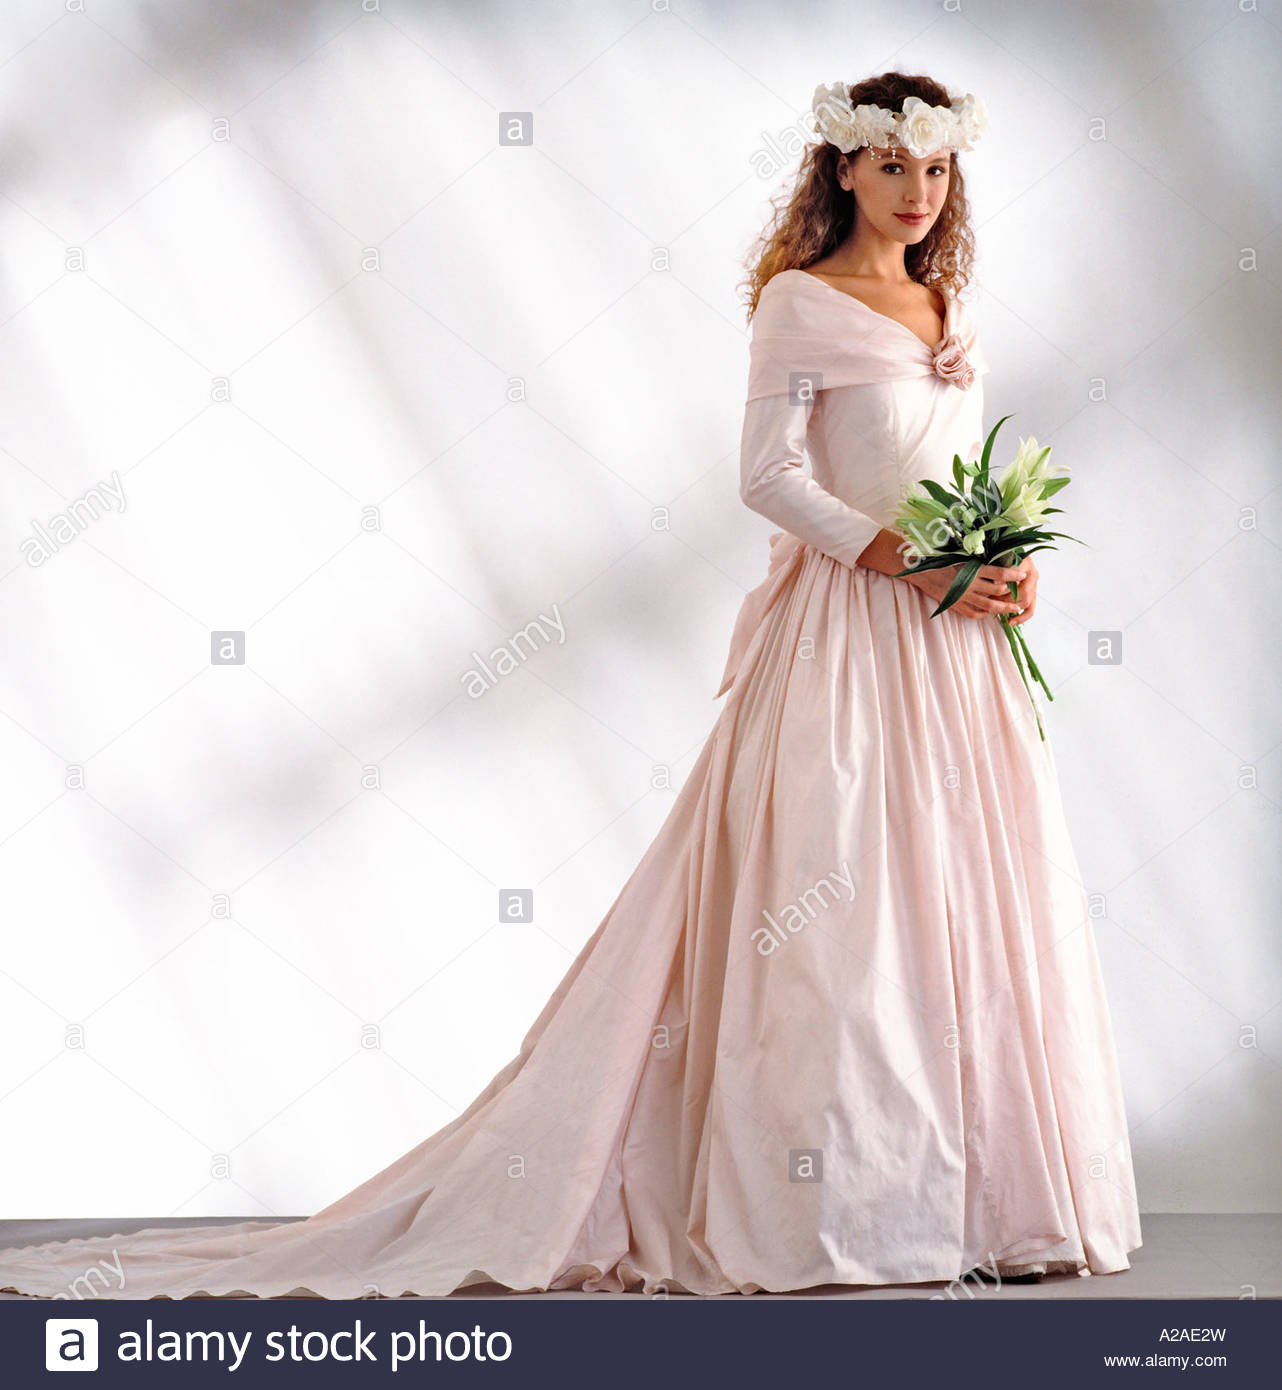 Pretty young bride stands ready in a pale pink wedding dress ...